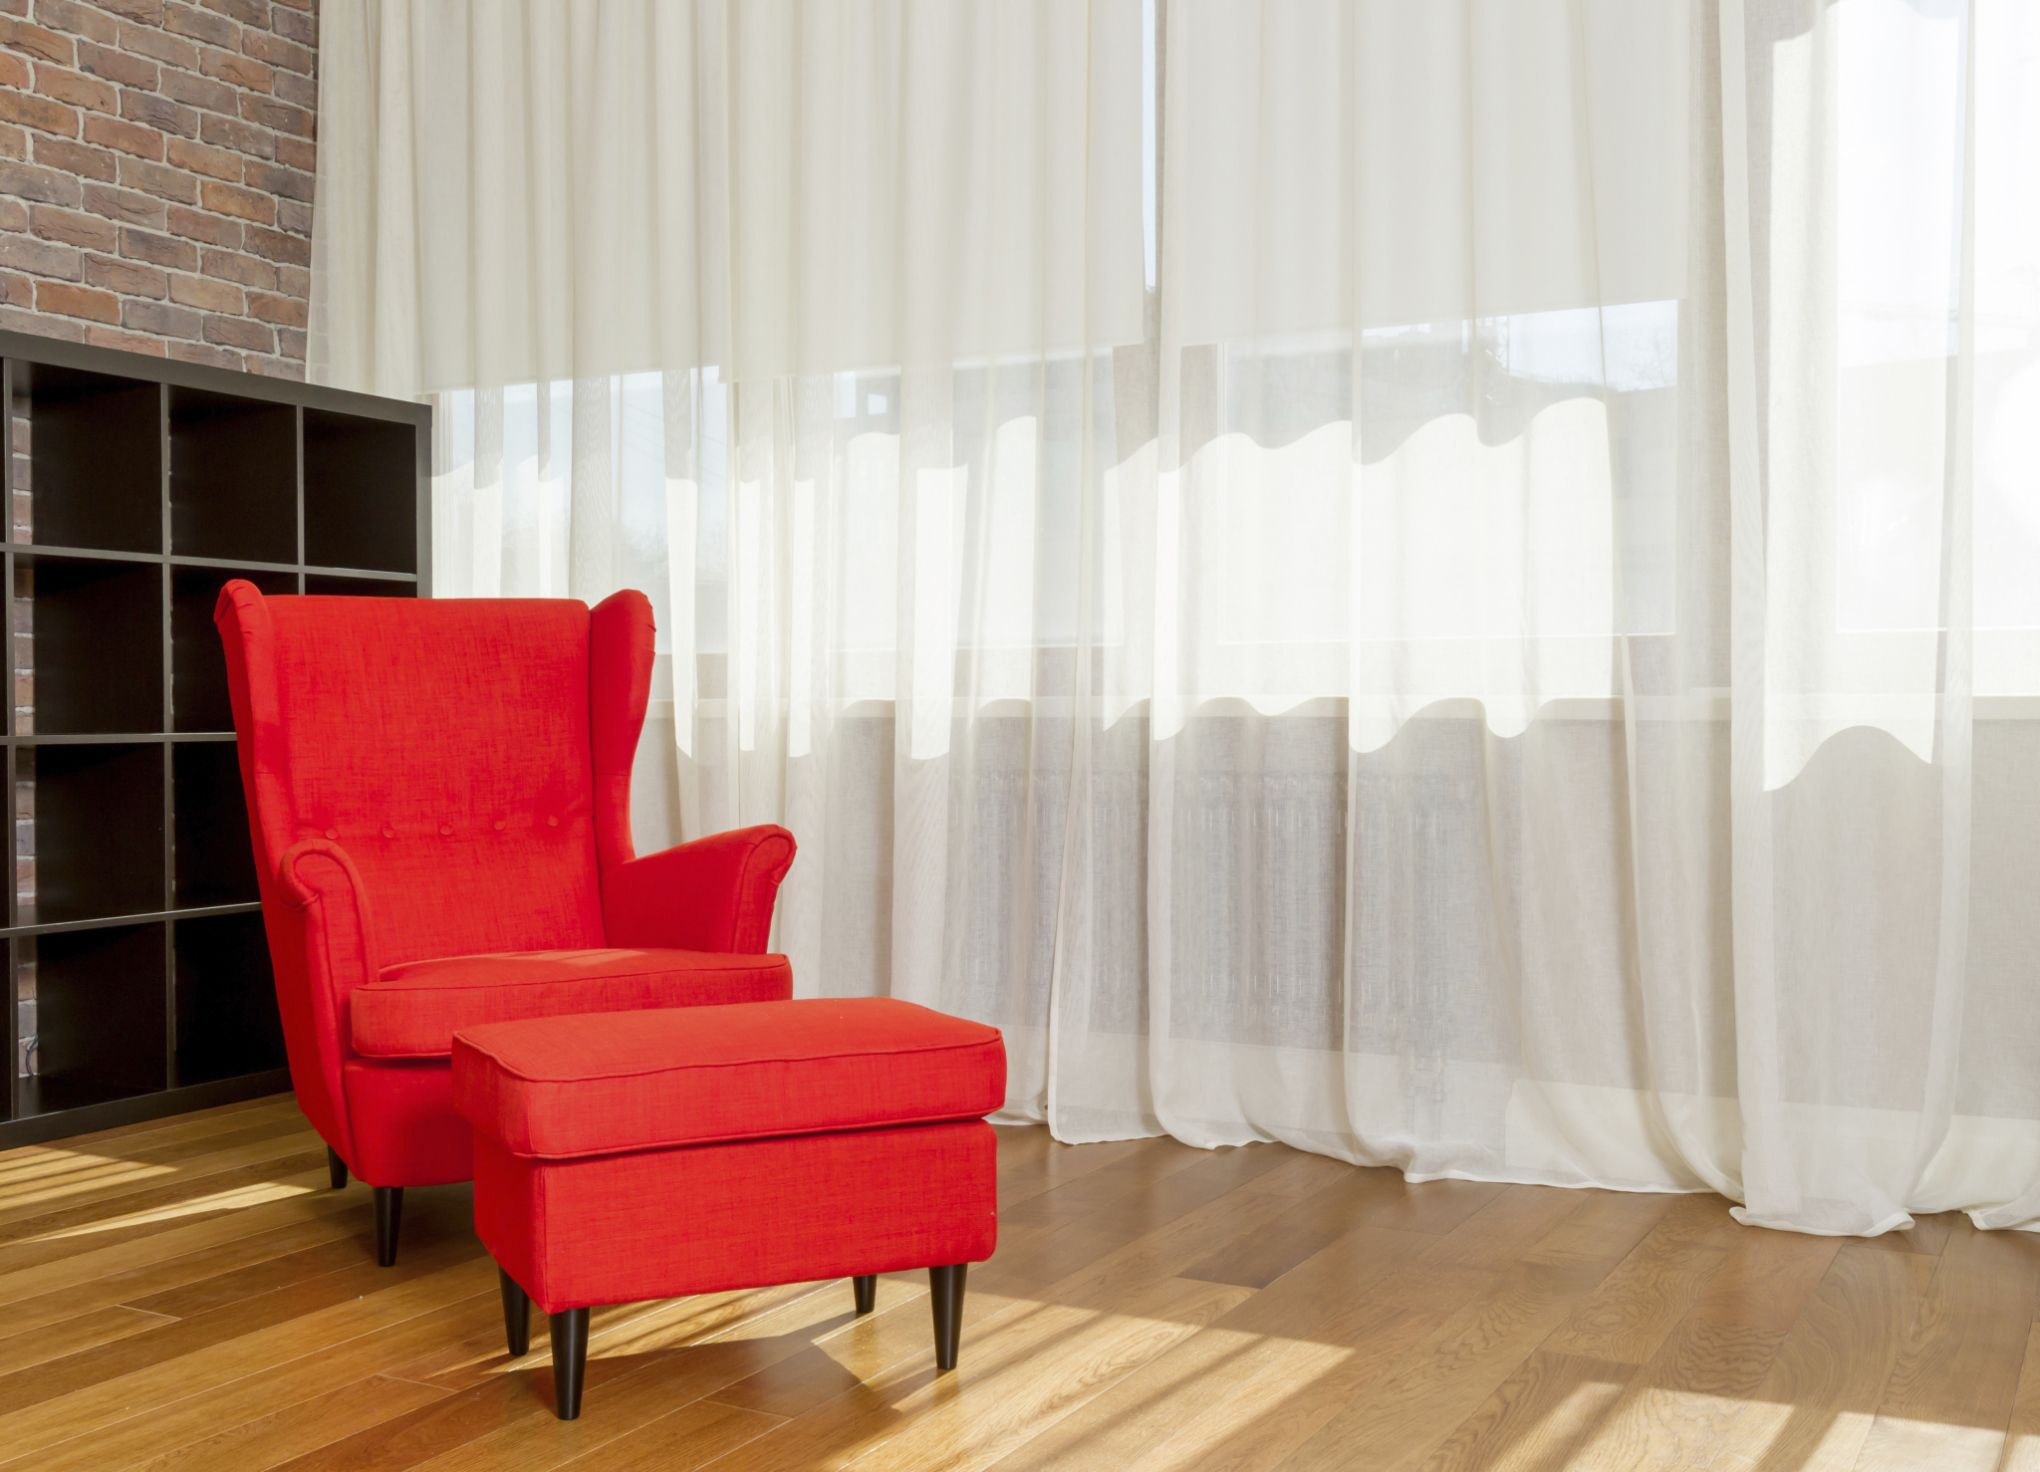 How To Hang Fabric To Hide Basement Walls Hunker Unfinished Basement Walls Basement Walls Floor To Ceiling Curtains